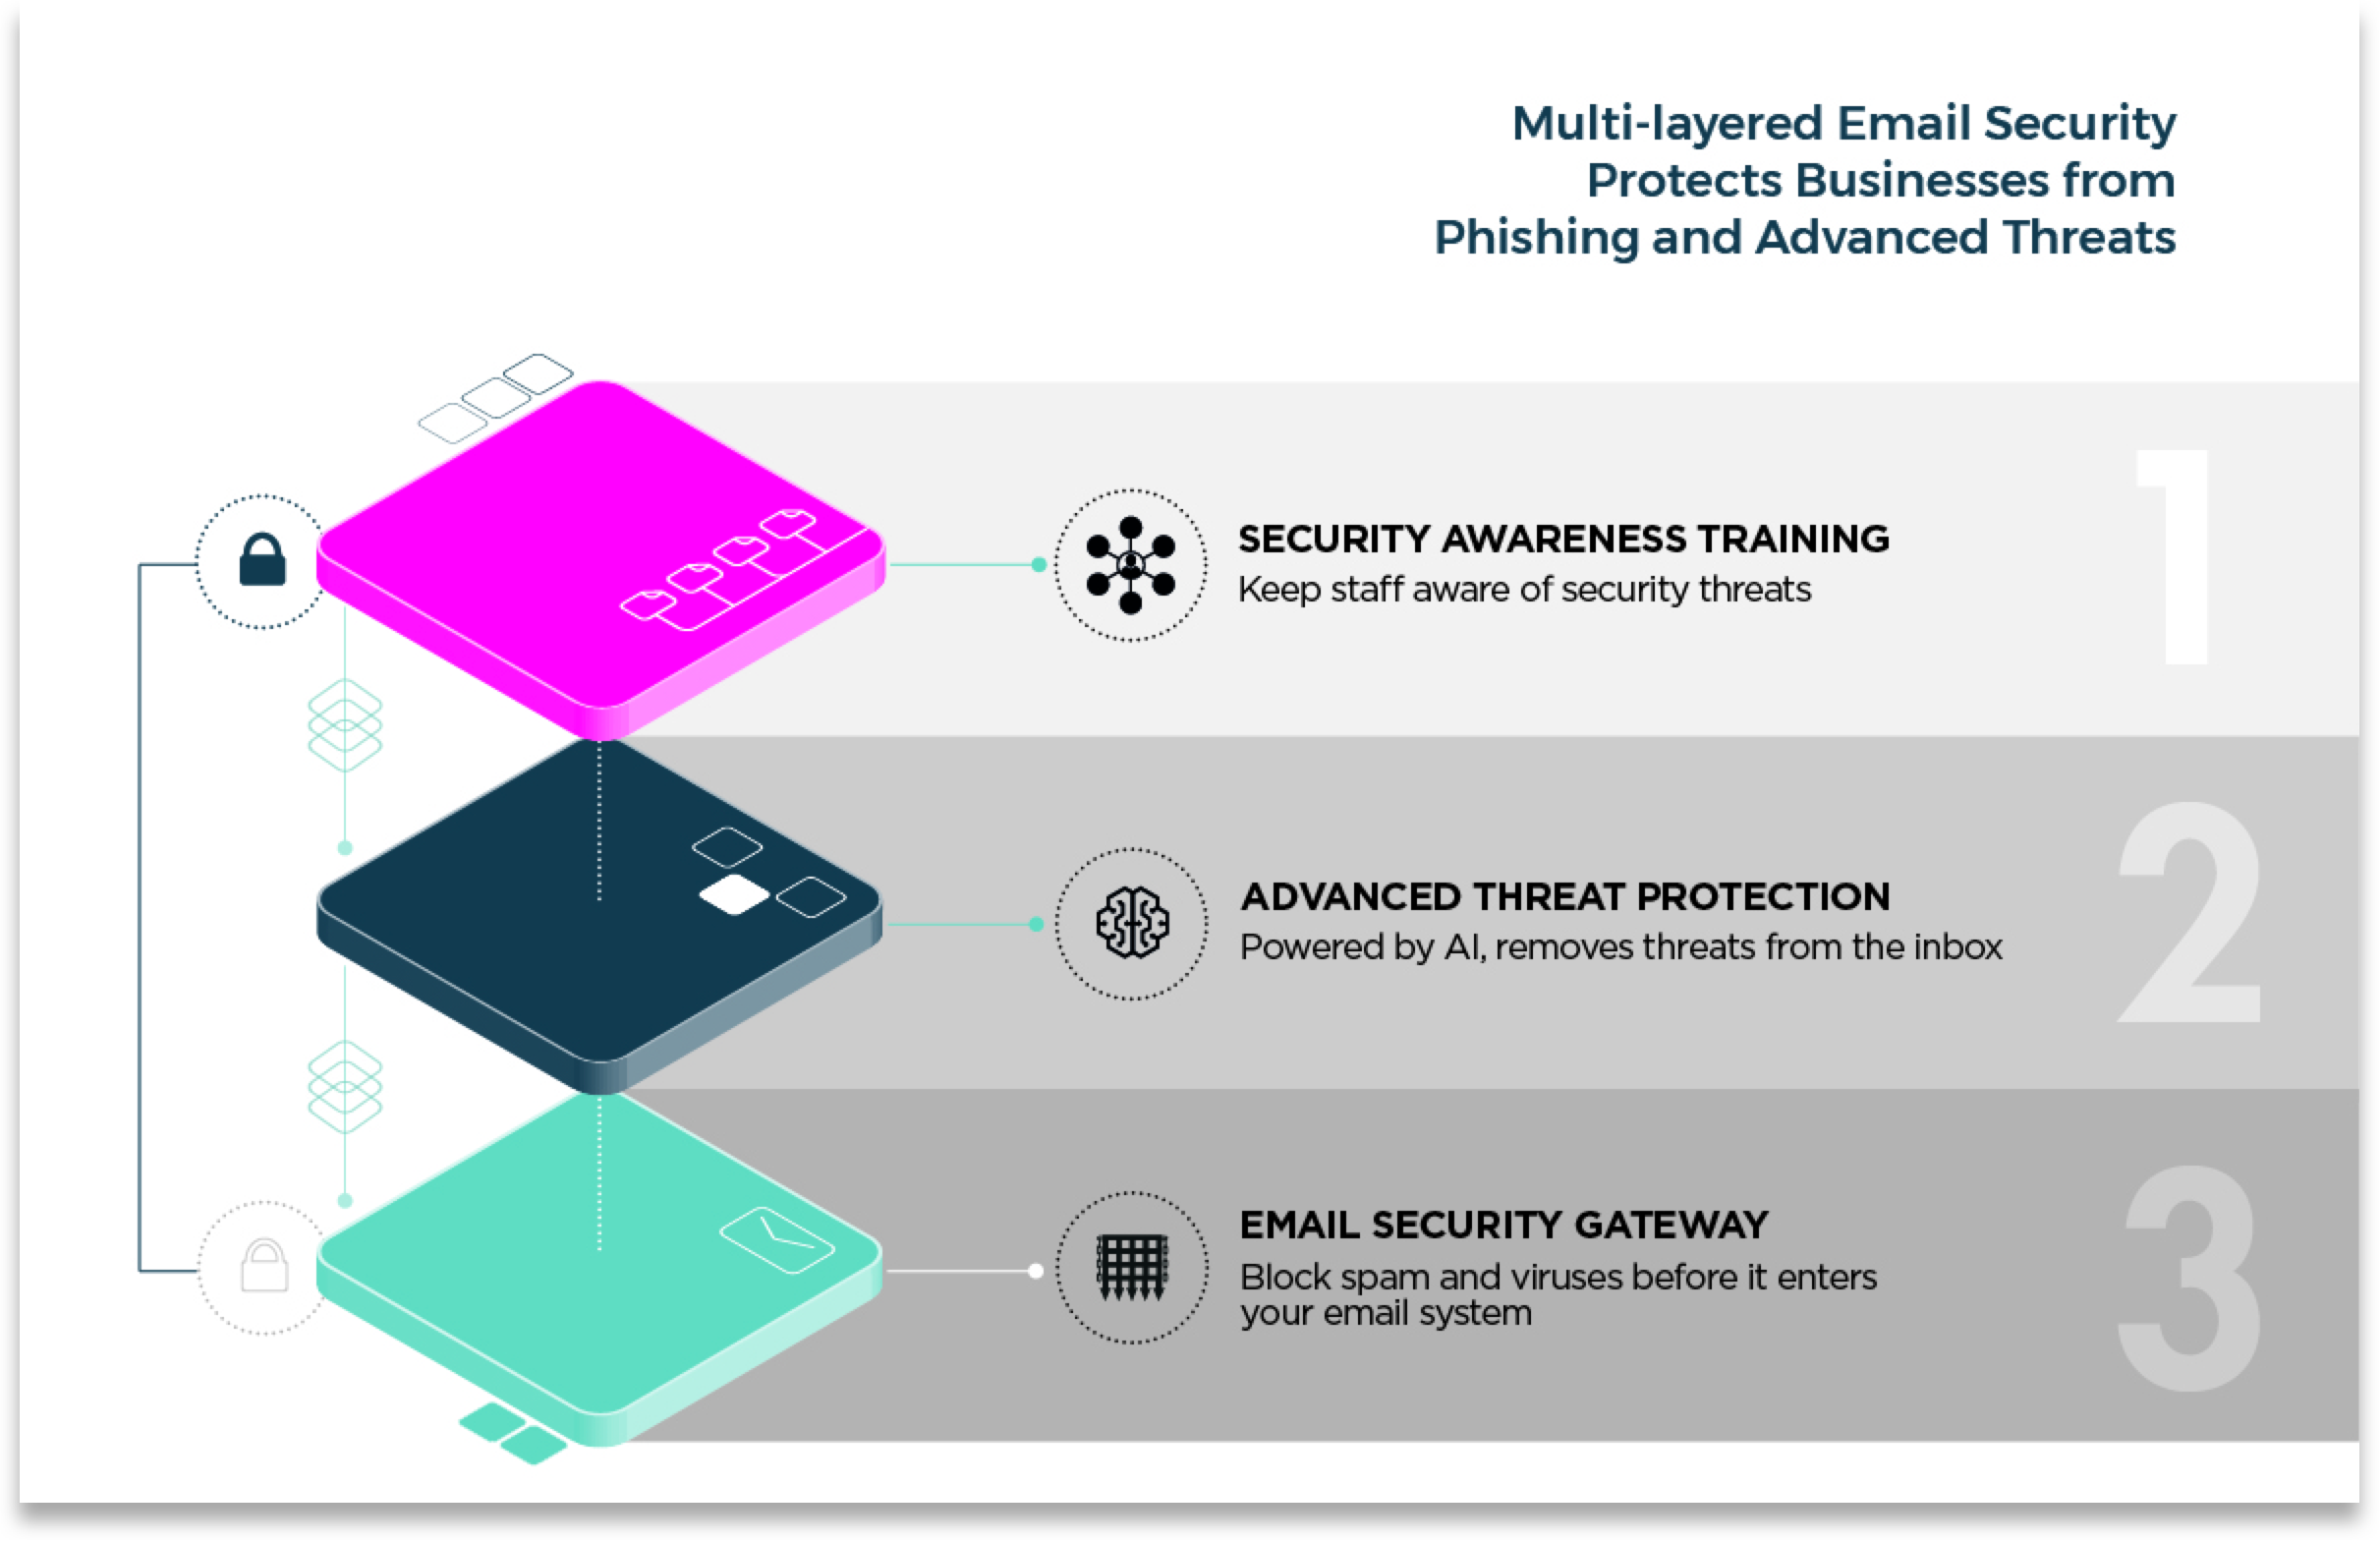 The best email security is to use 3 layers of protection - a secure email gateway, post delivery protection and user training